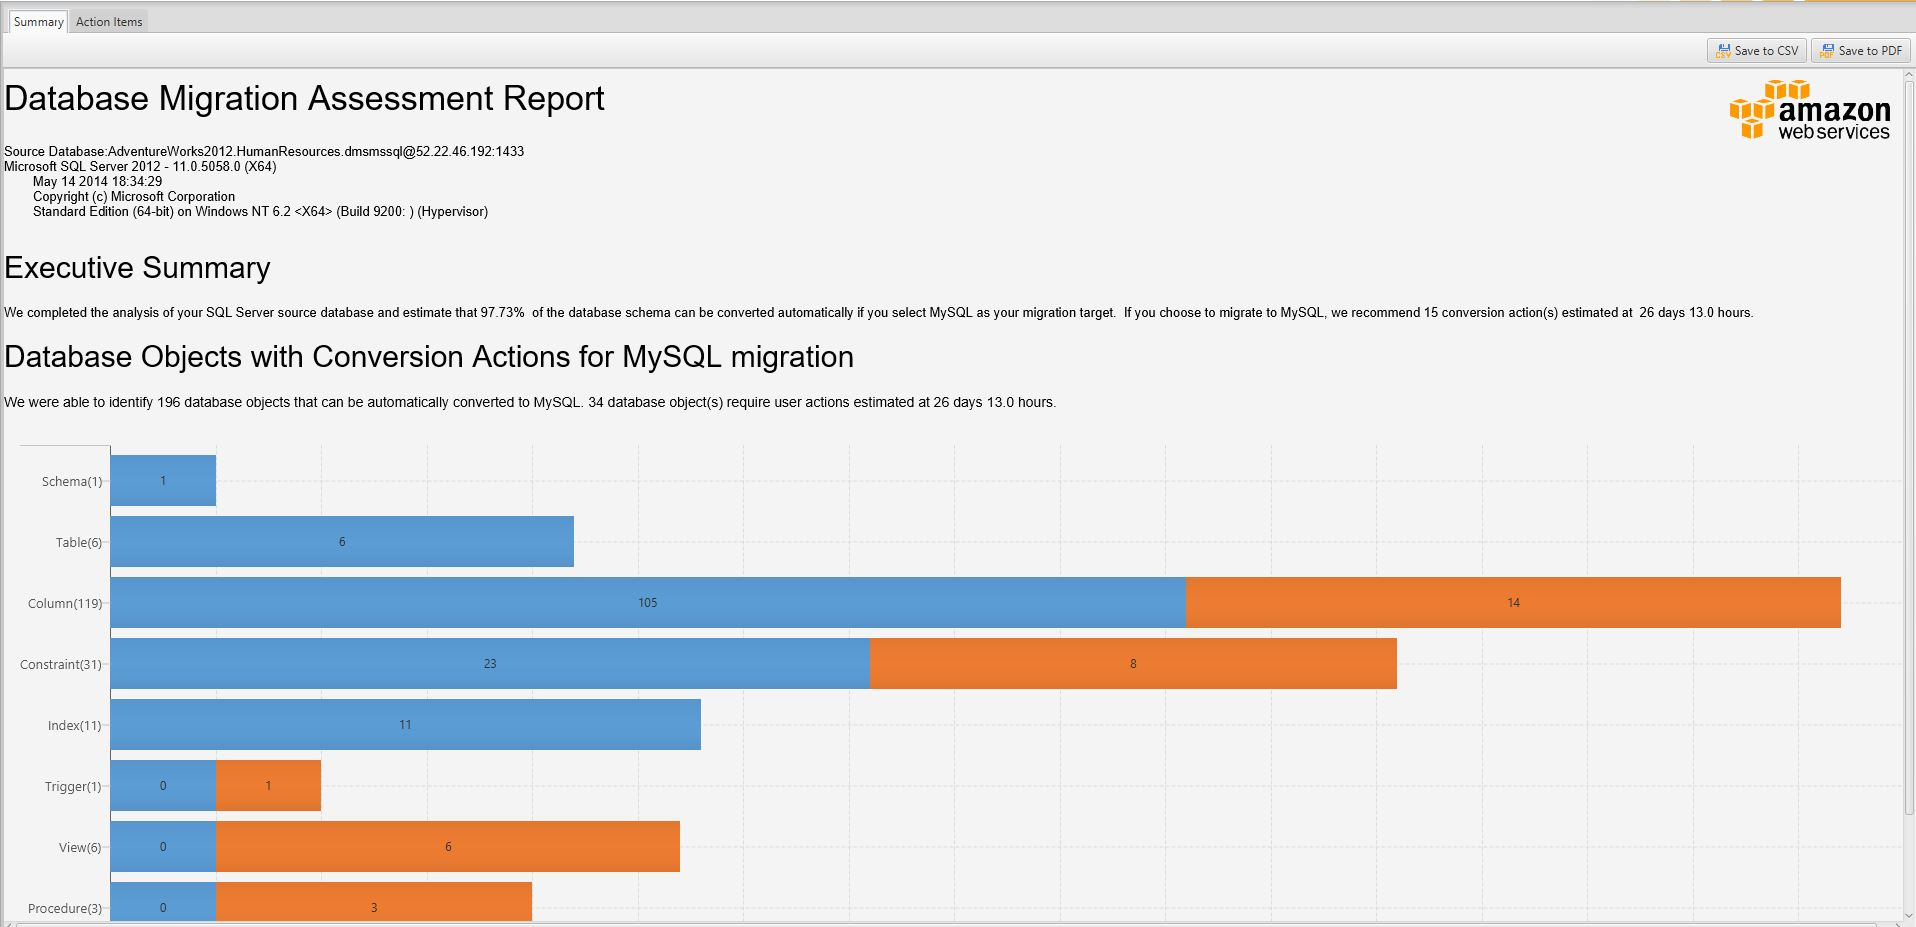 Database Migraton Assessment Report Summary View